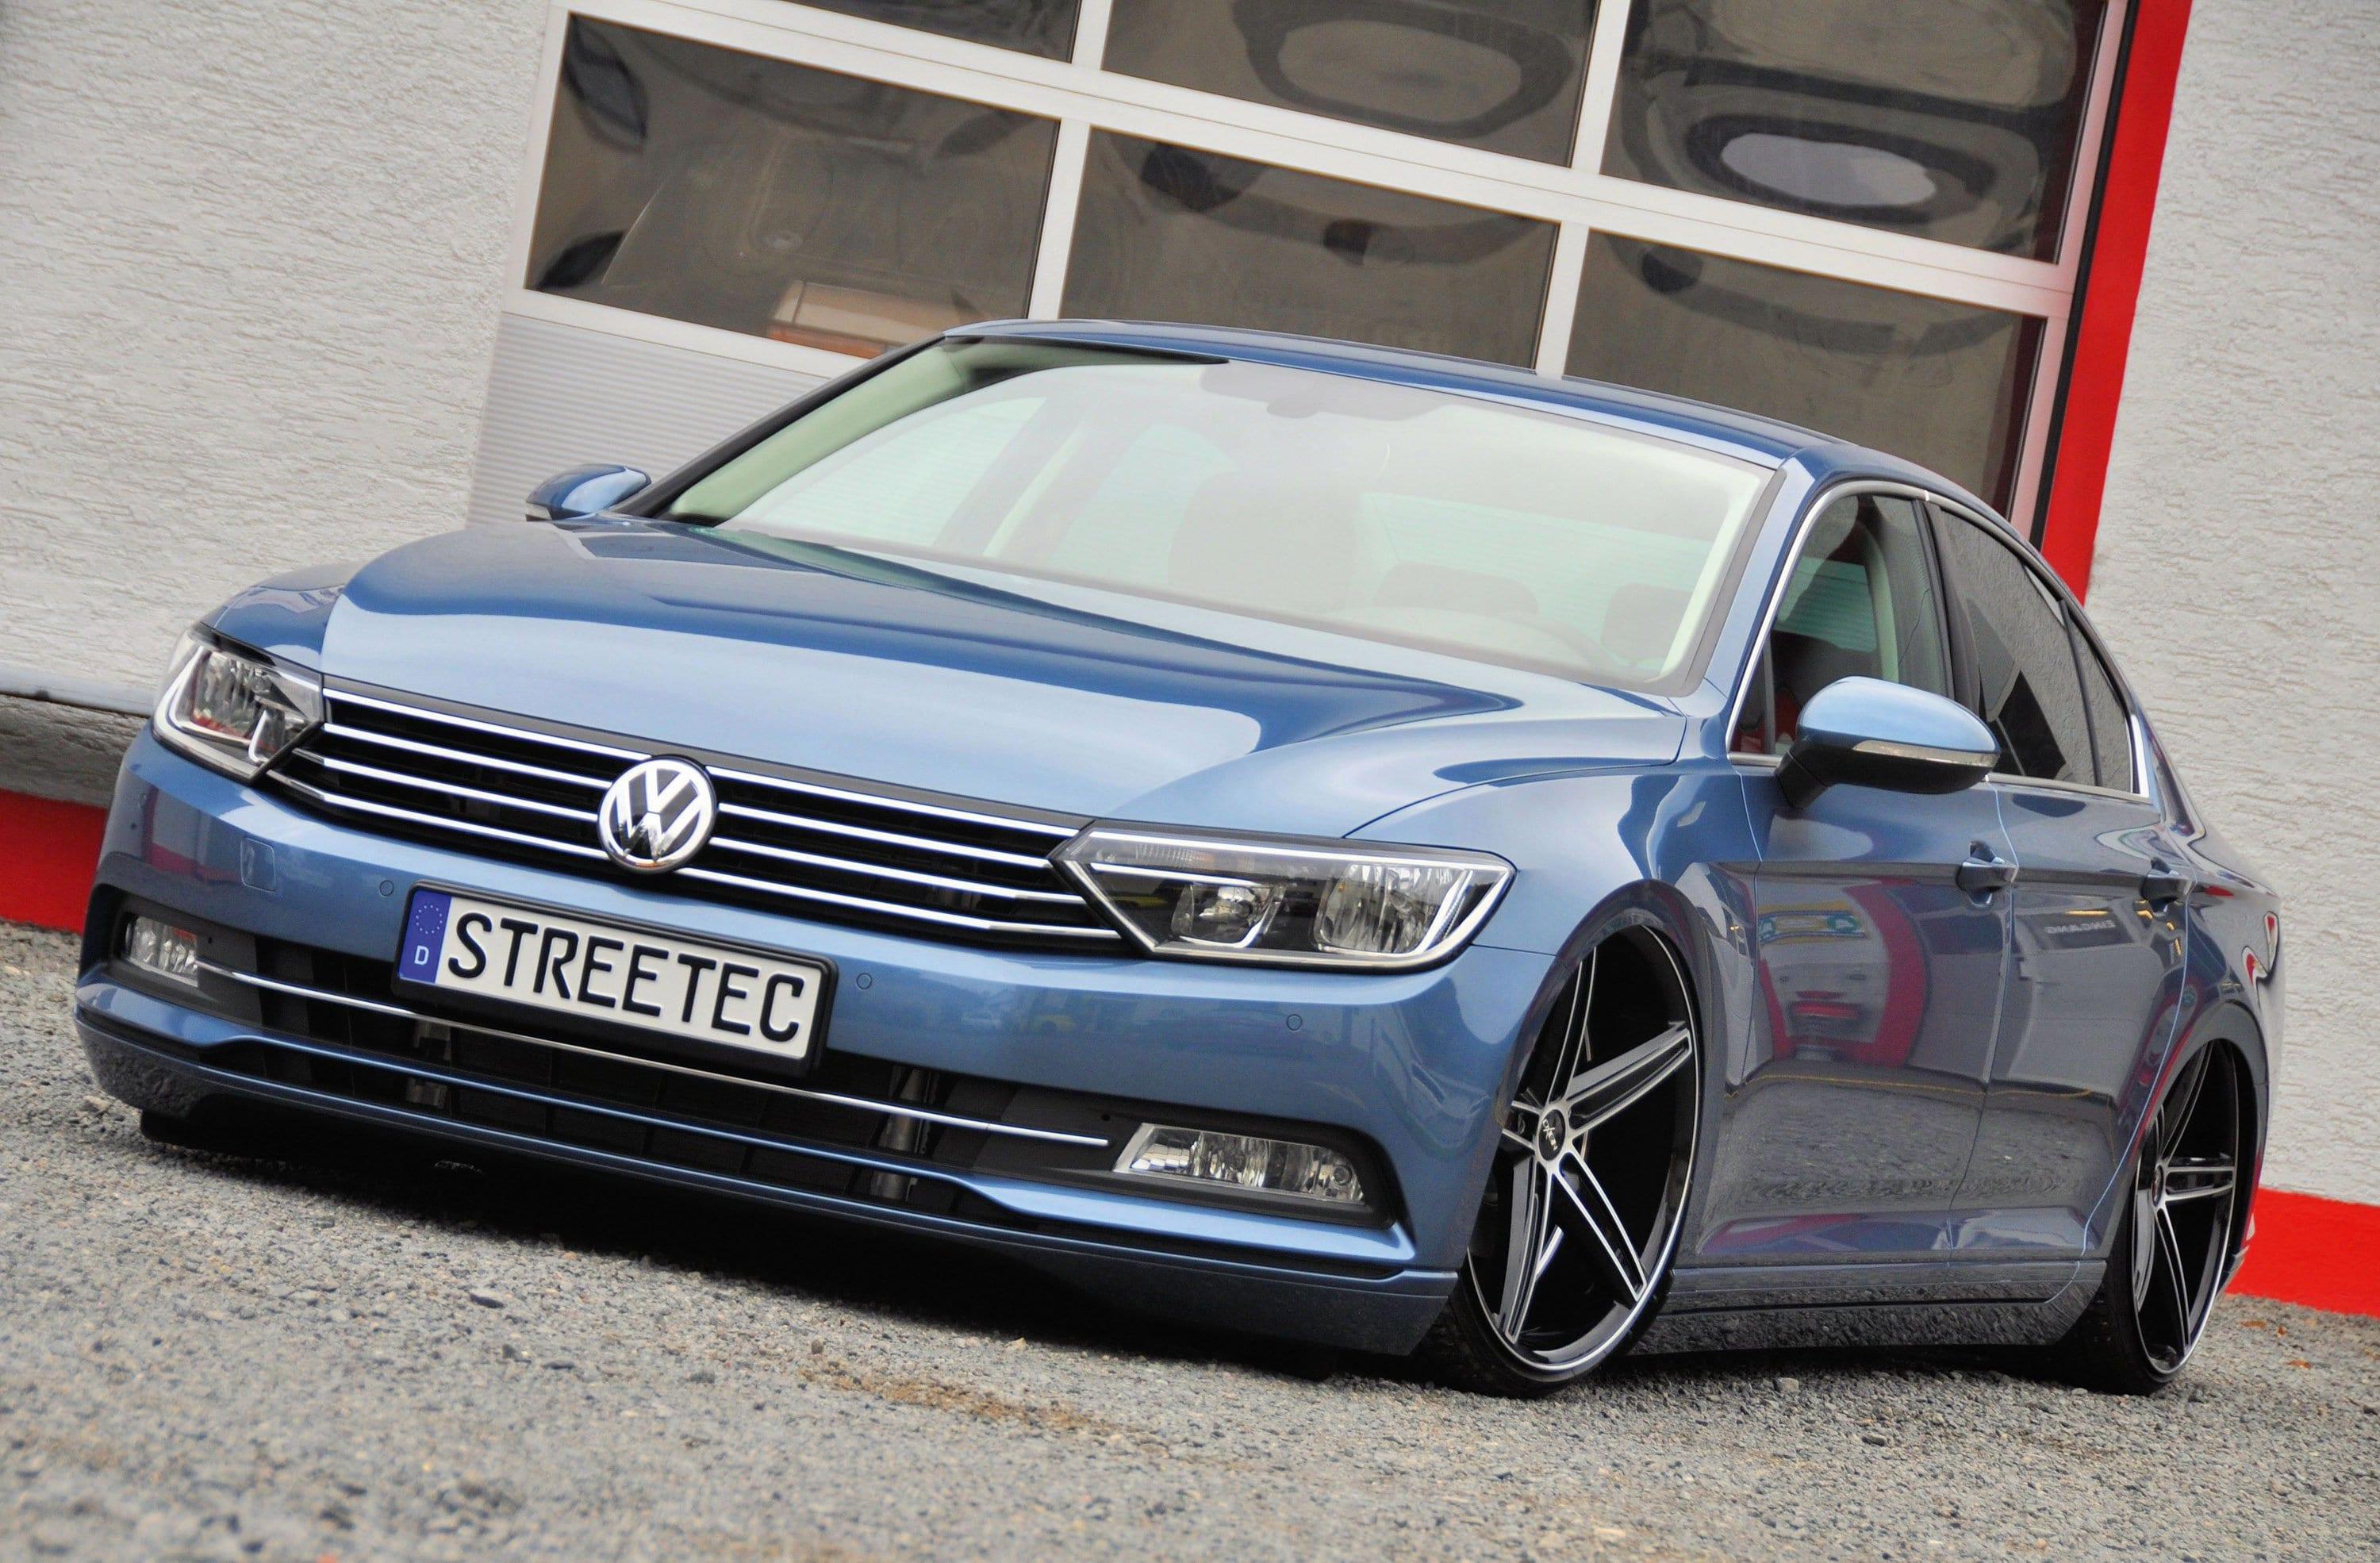 Volkswagen Passat B8 Backgrounds